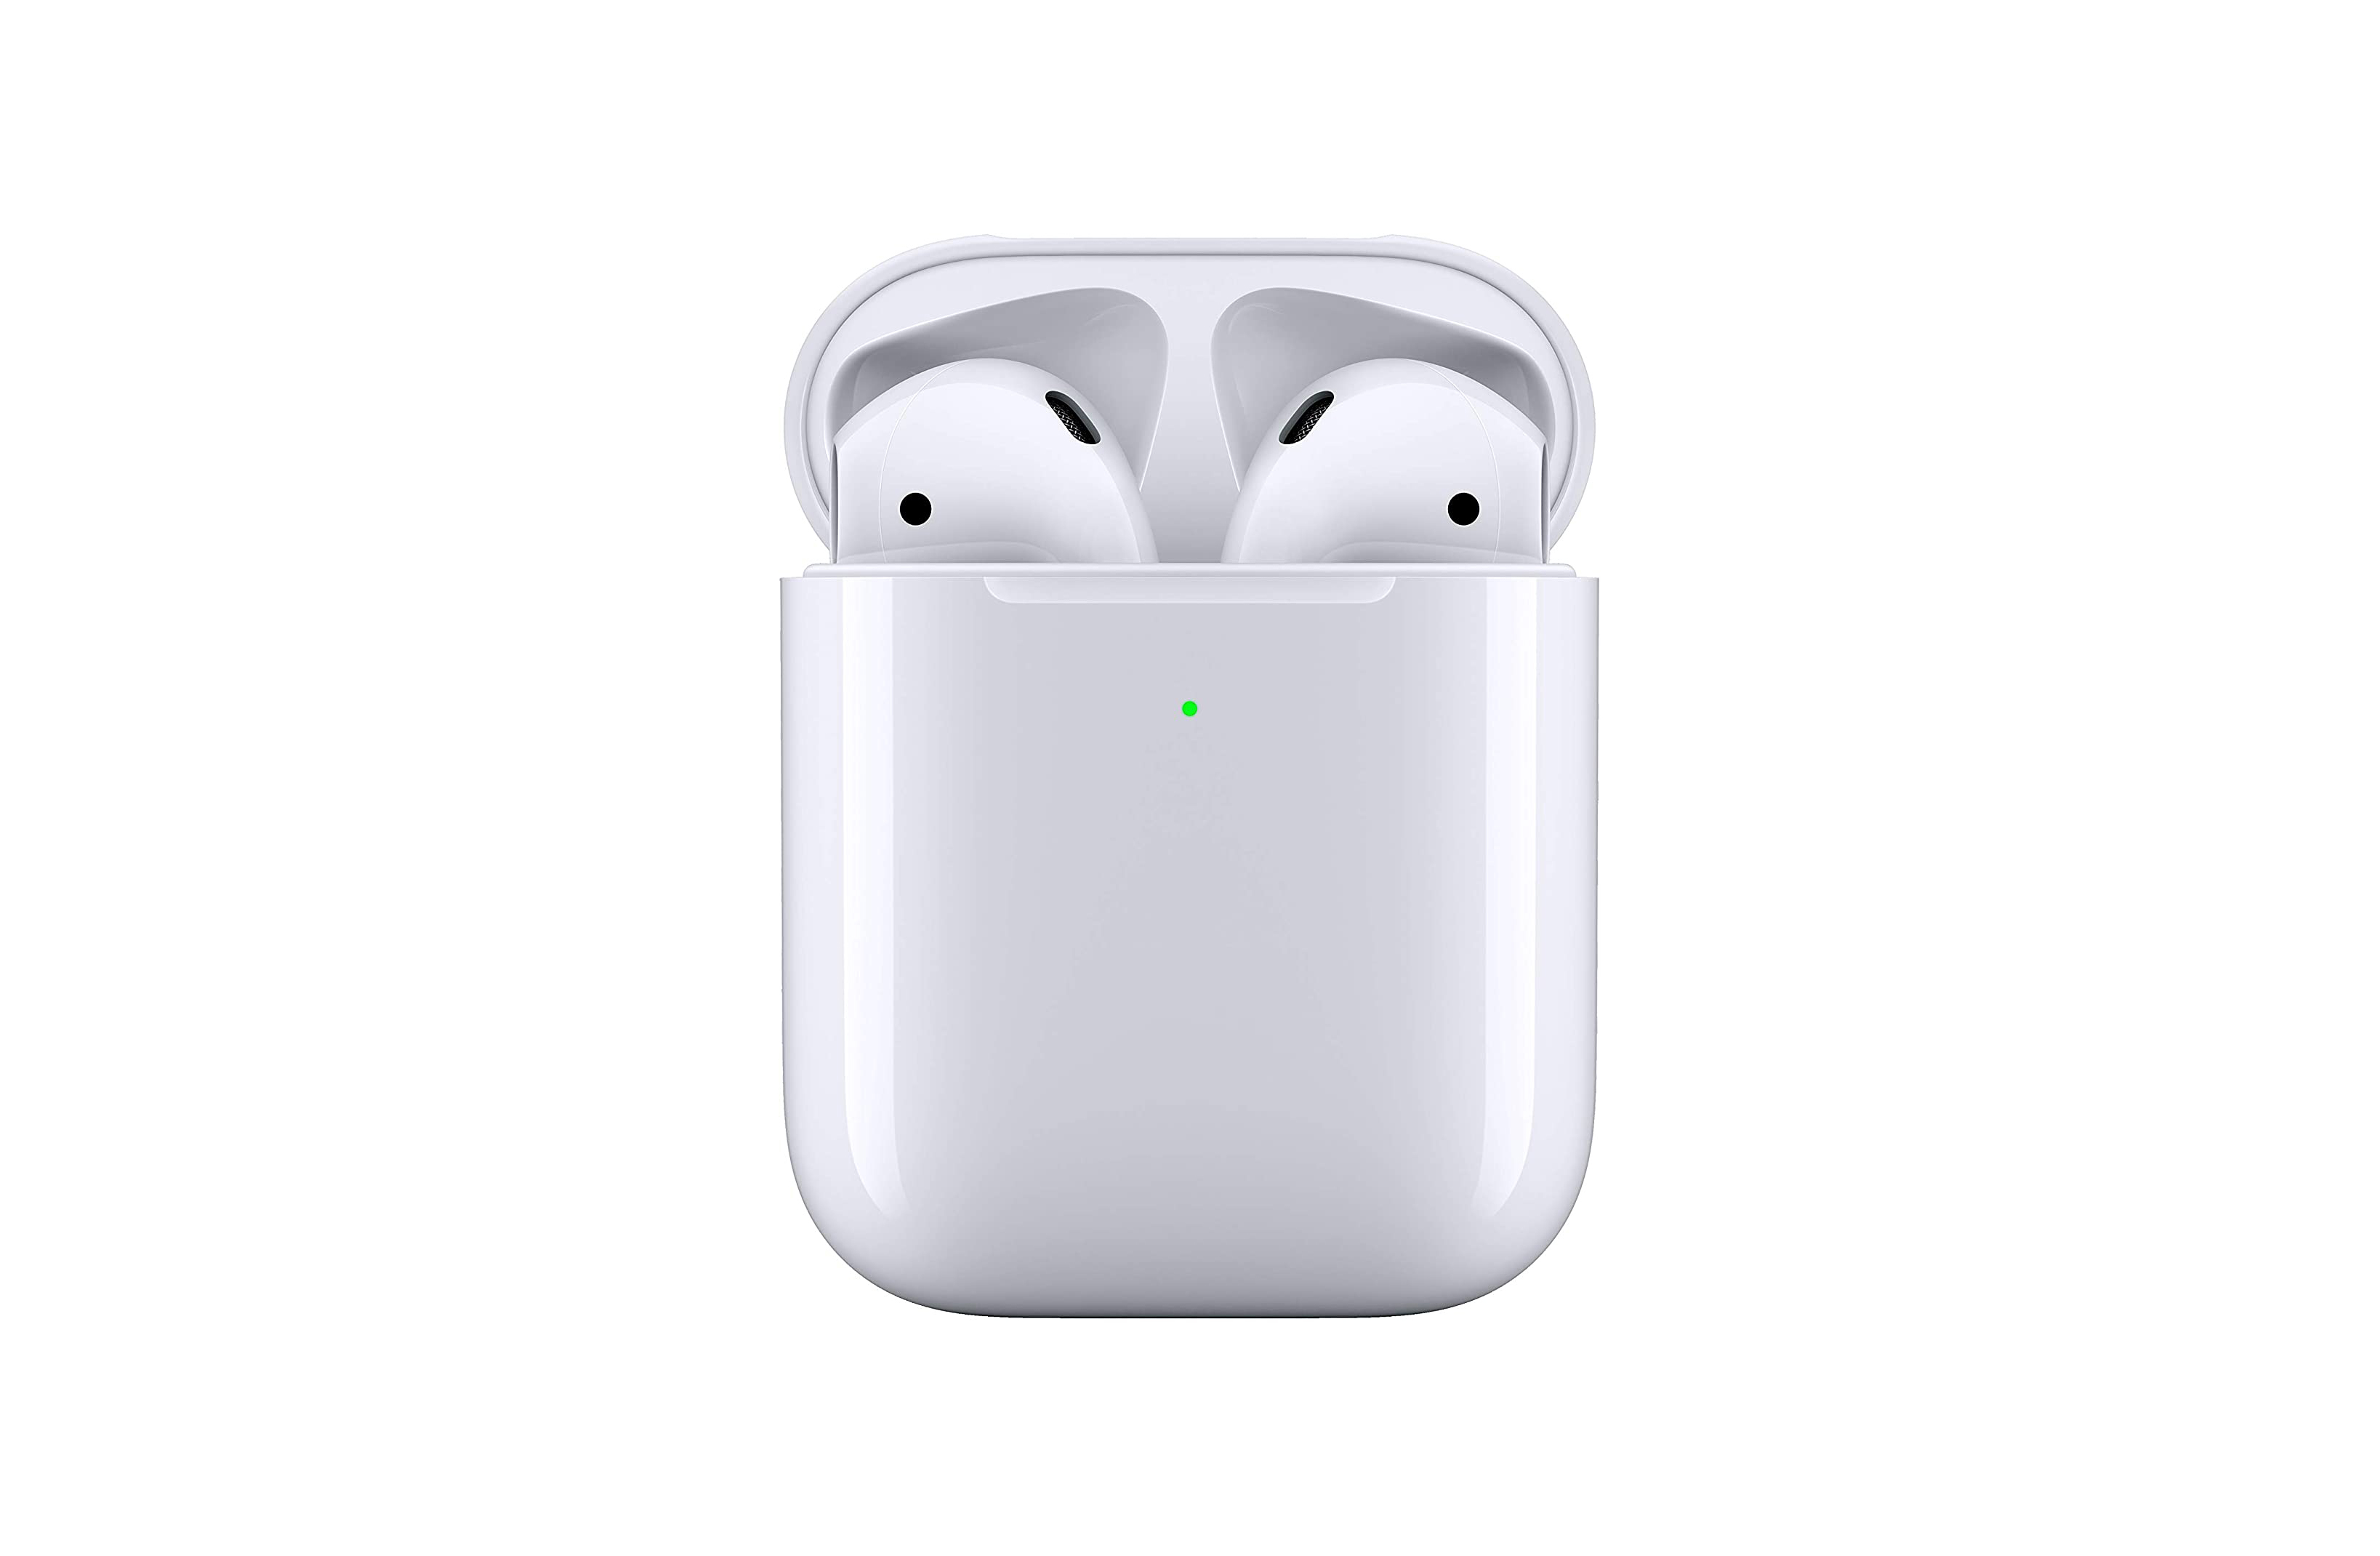 Apple Airpods with Wireless Charging Case Amazon